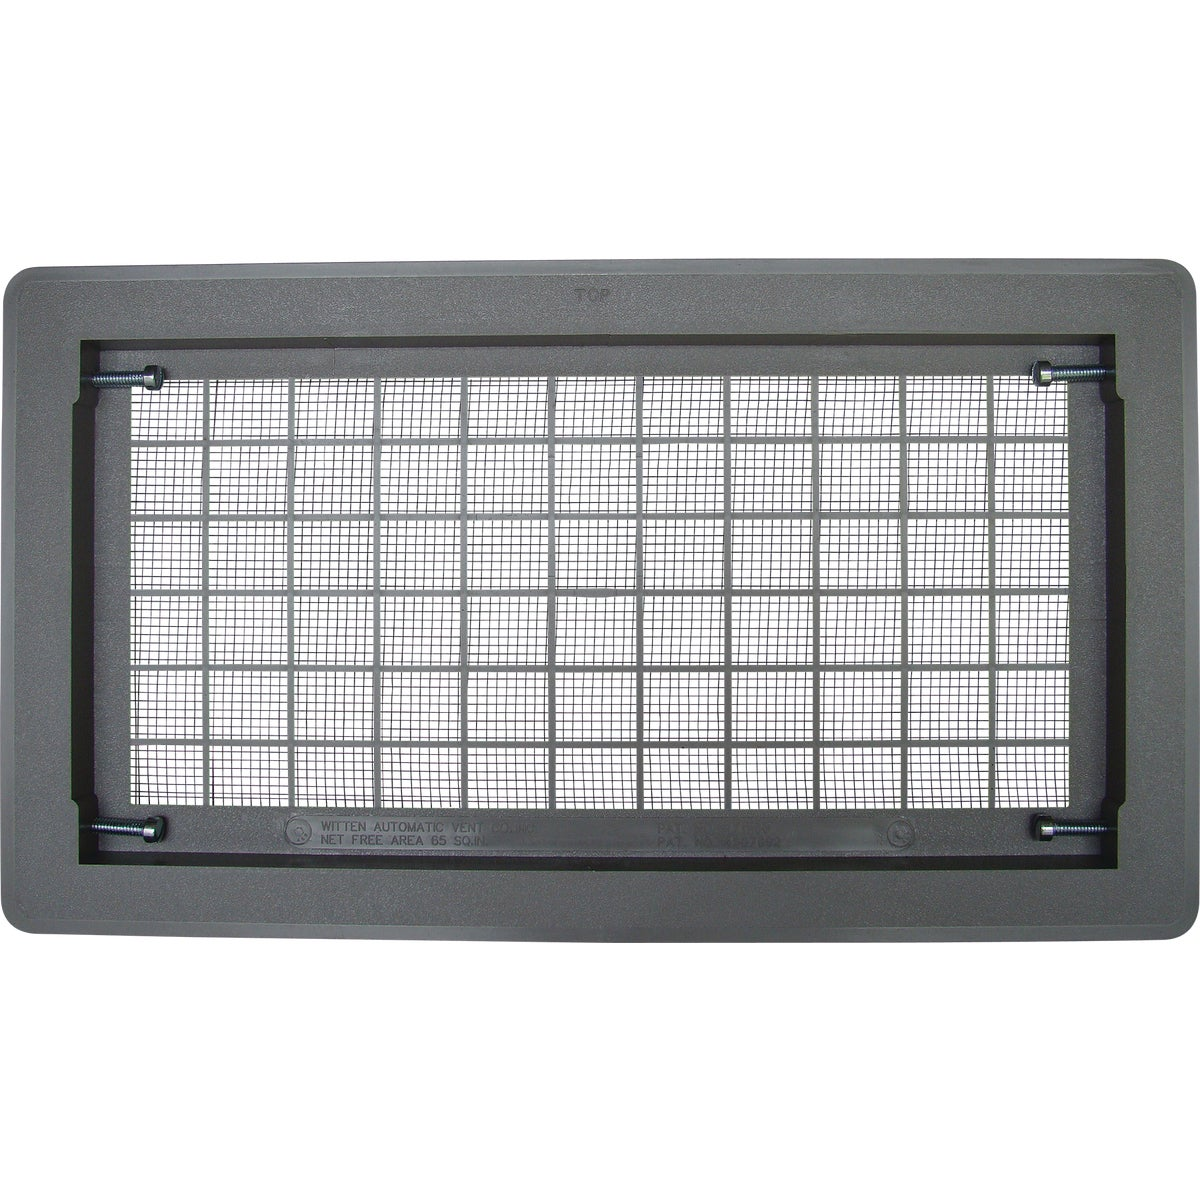 GRAY AUTO FOUNDATON VENT - 306MGR by Witten Automatic Vnt